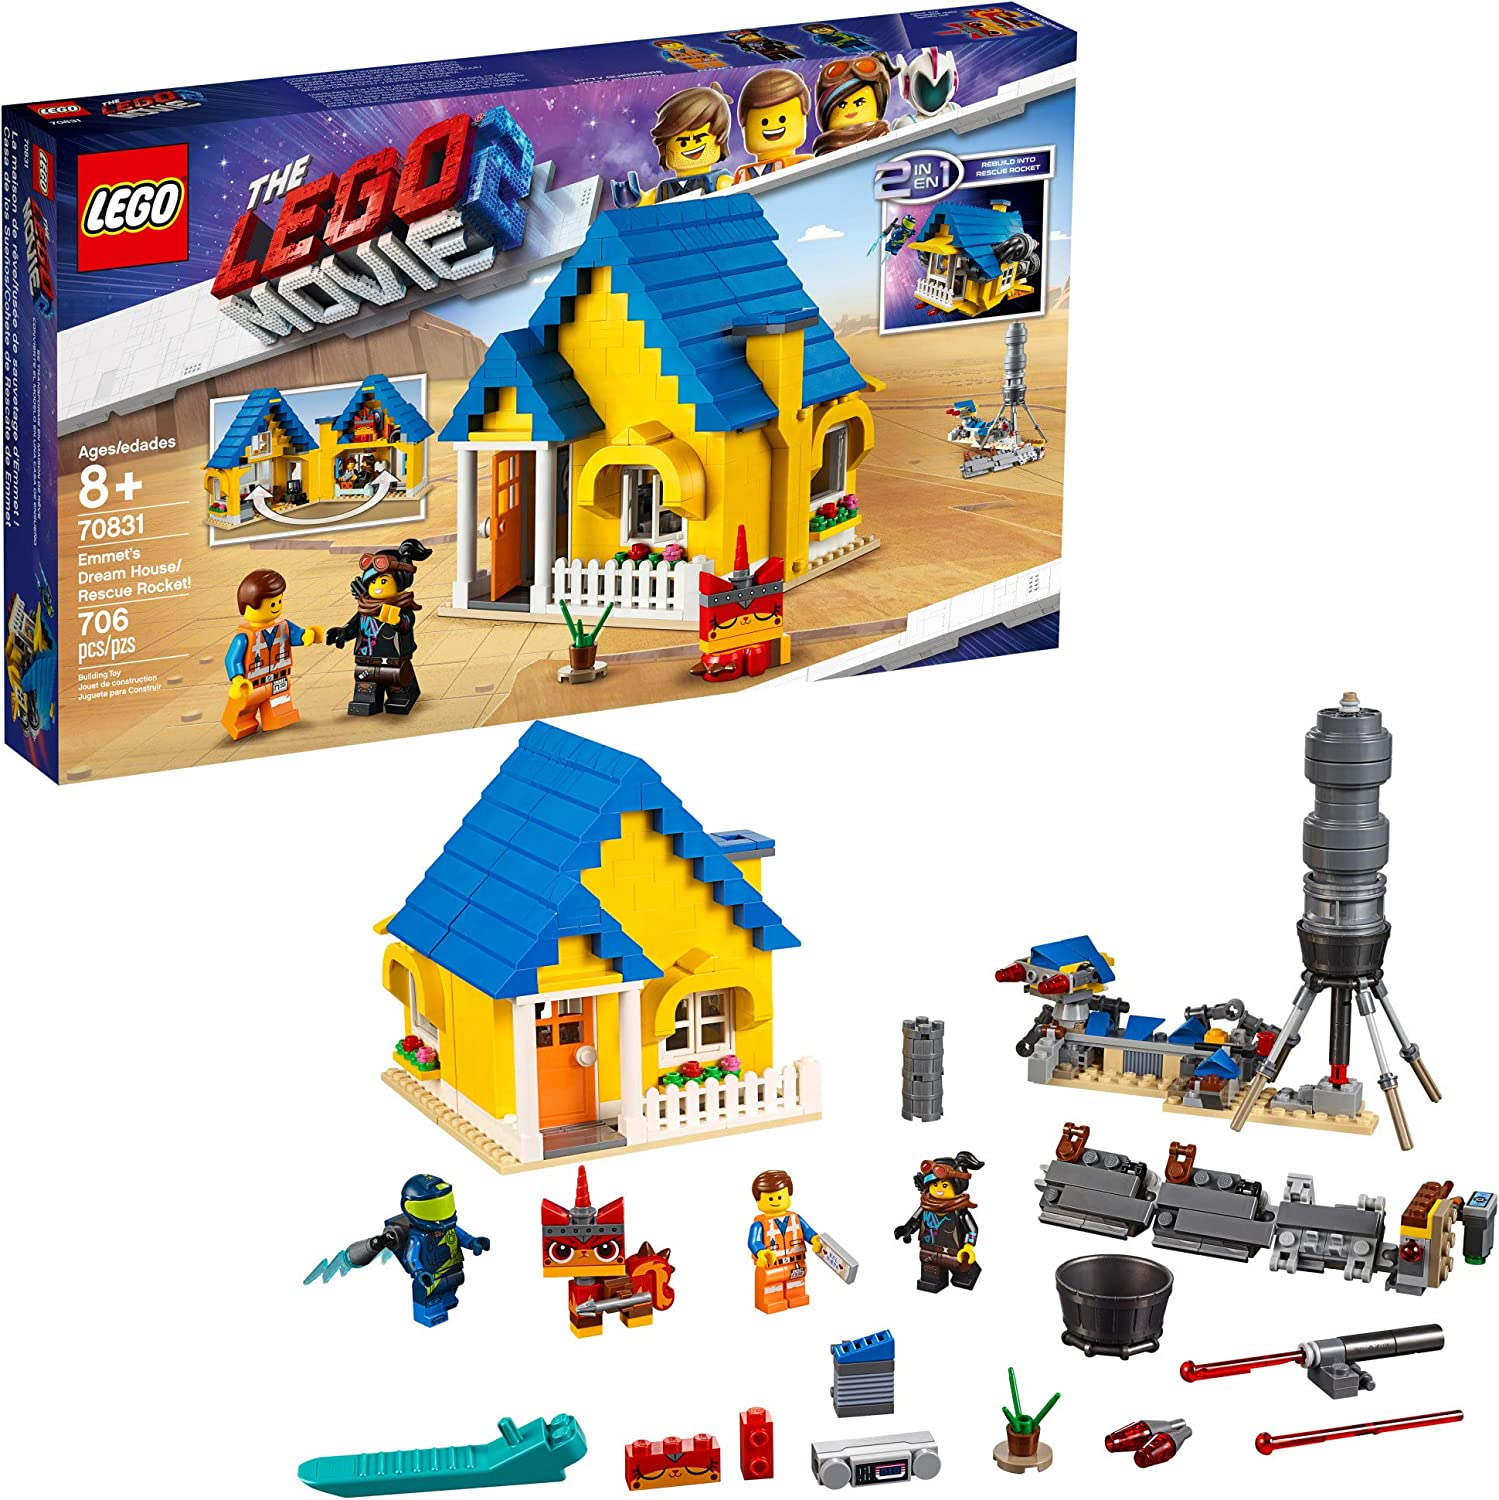 LEGO THE LEGO MOVIE 2 Emmet's Dream House/Rescue Rocket; 70831 Building Kit, Pretend Play Toy House for kids age 8+ (706 Pieces)